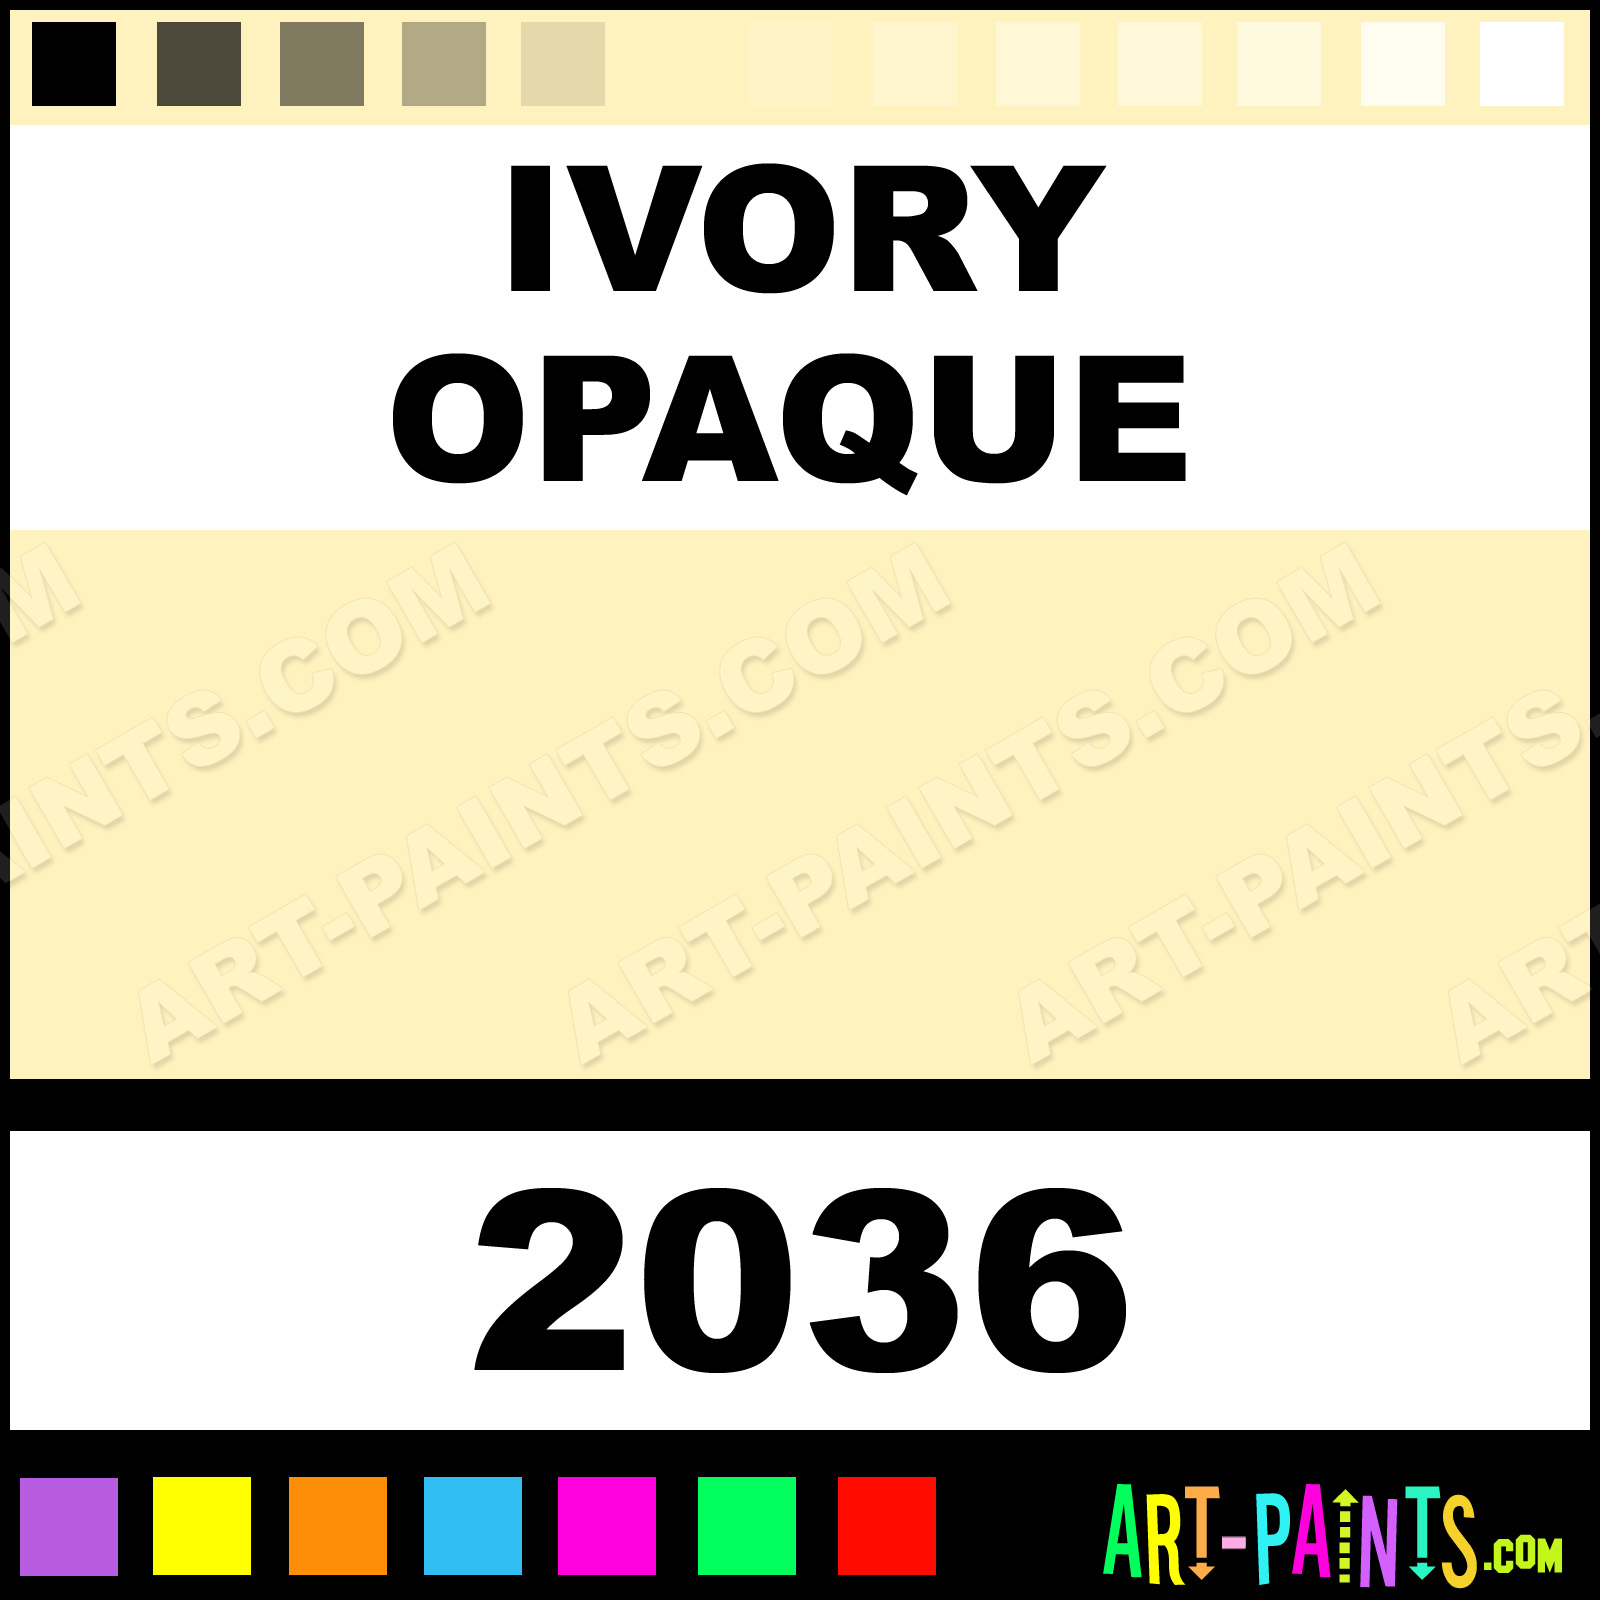 Ivory opaque delta acrylic paints 2036 ivory opaque paint ivory opaque nvjuhfo Choice Image